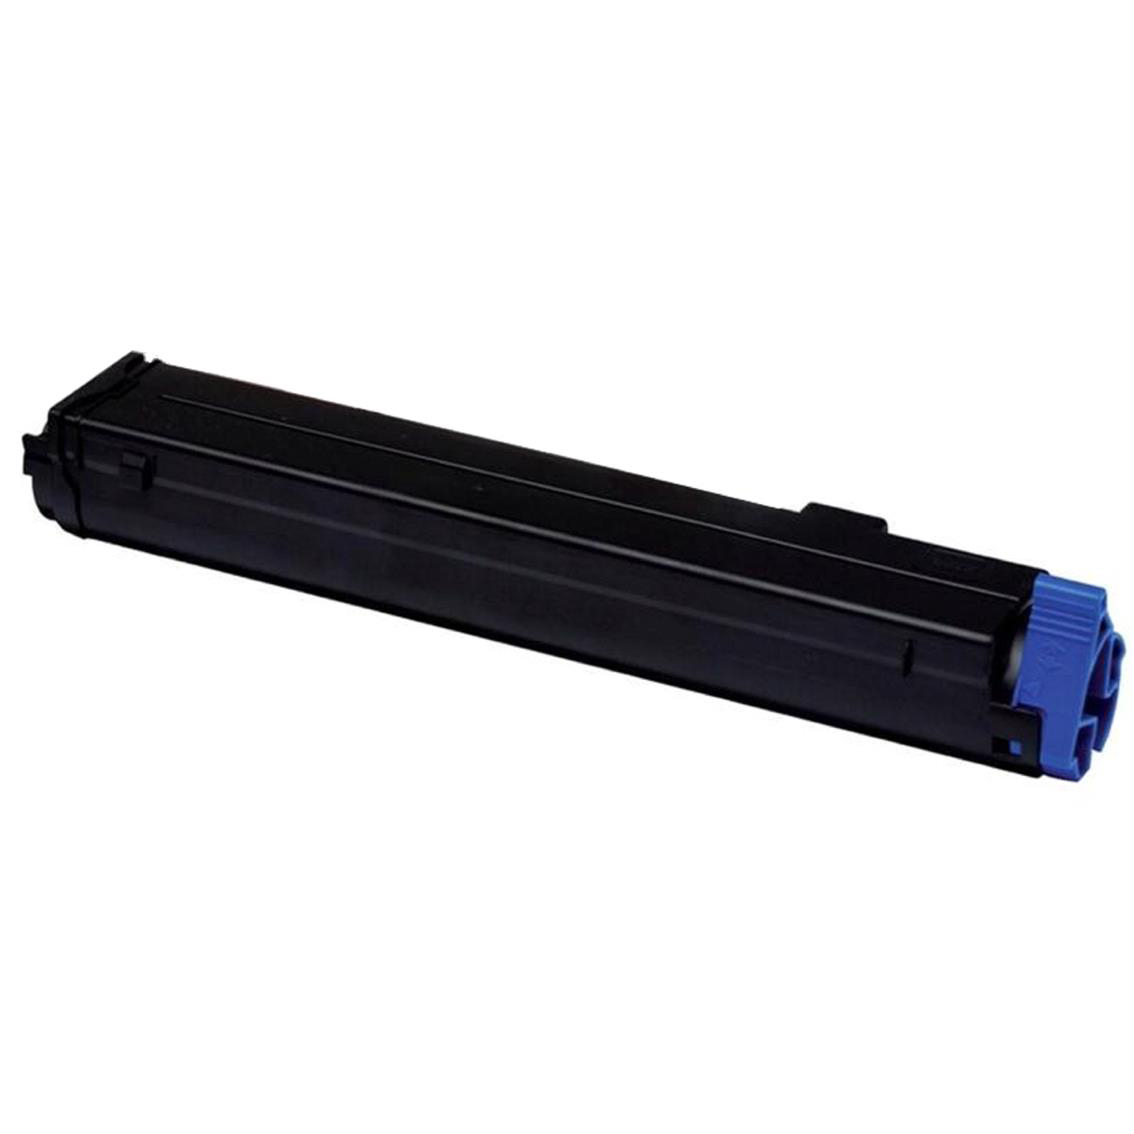 OKI Laser Toner Cartridge Extra High Yield Page Life 15000pp Black Ref 45807111